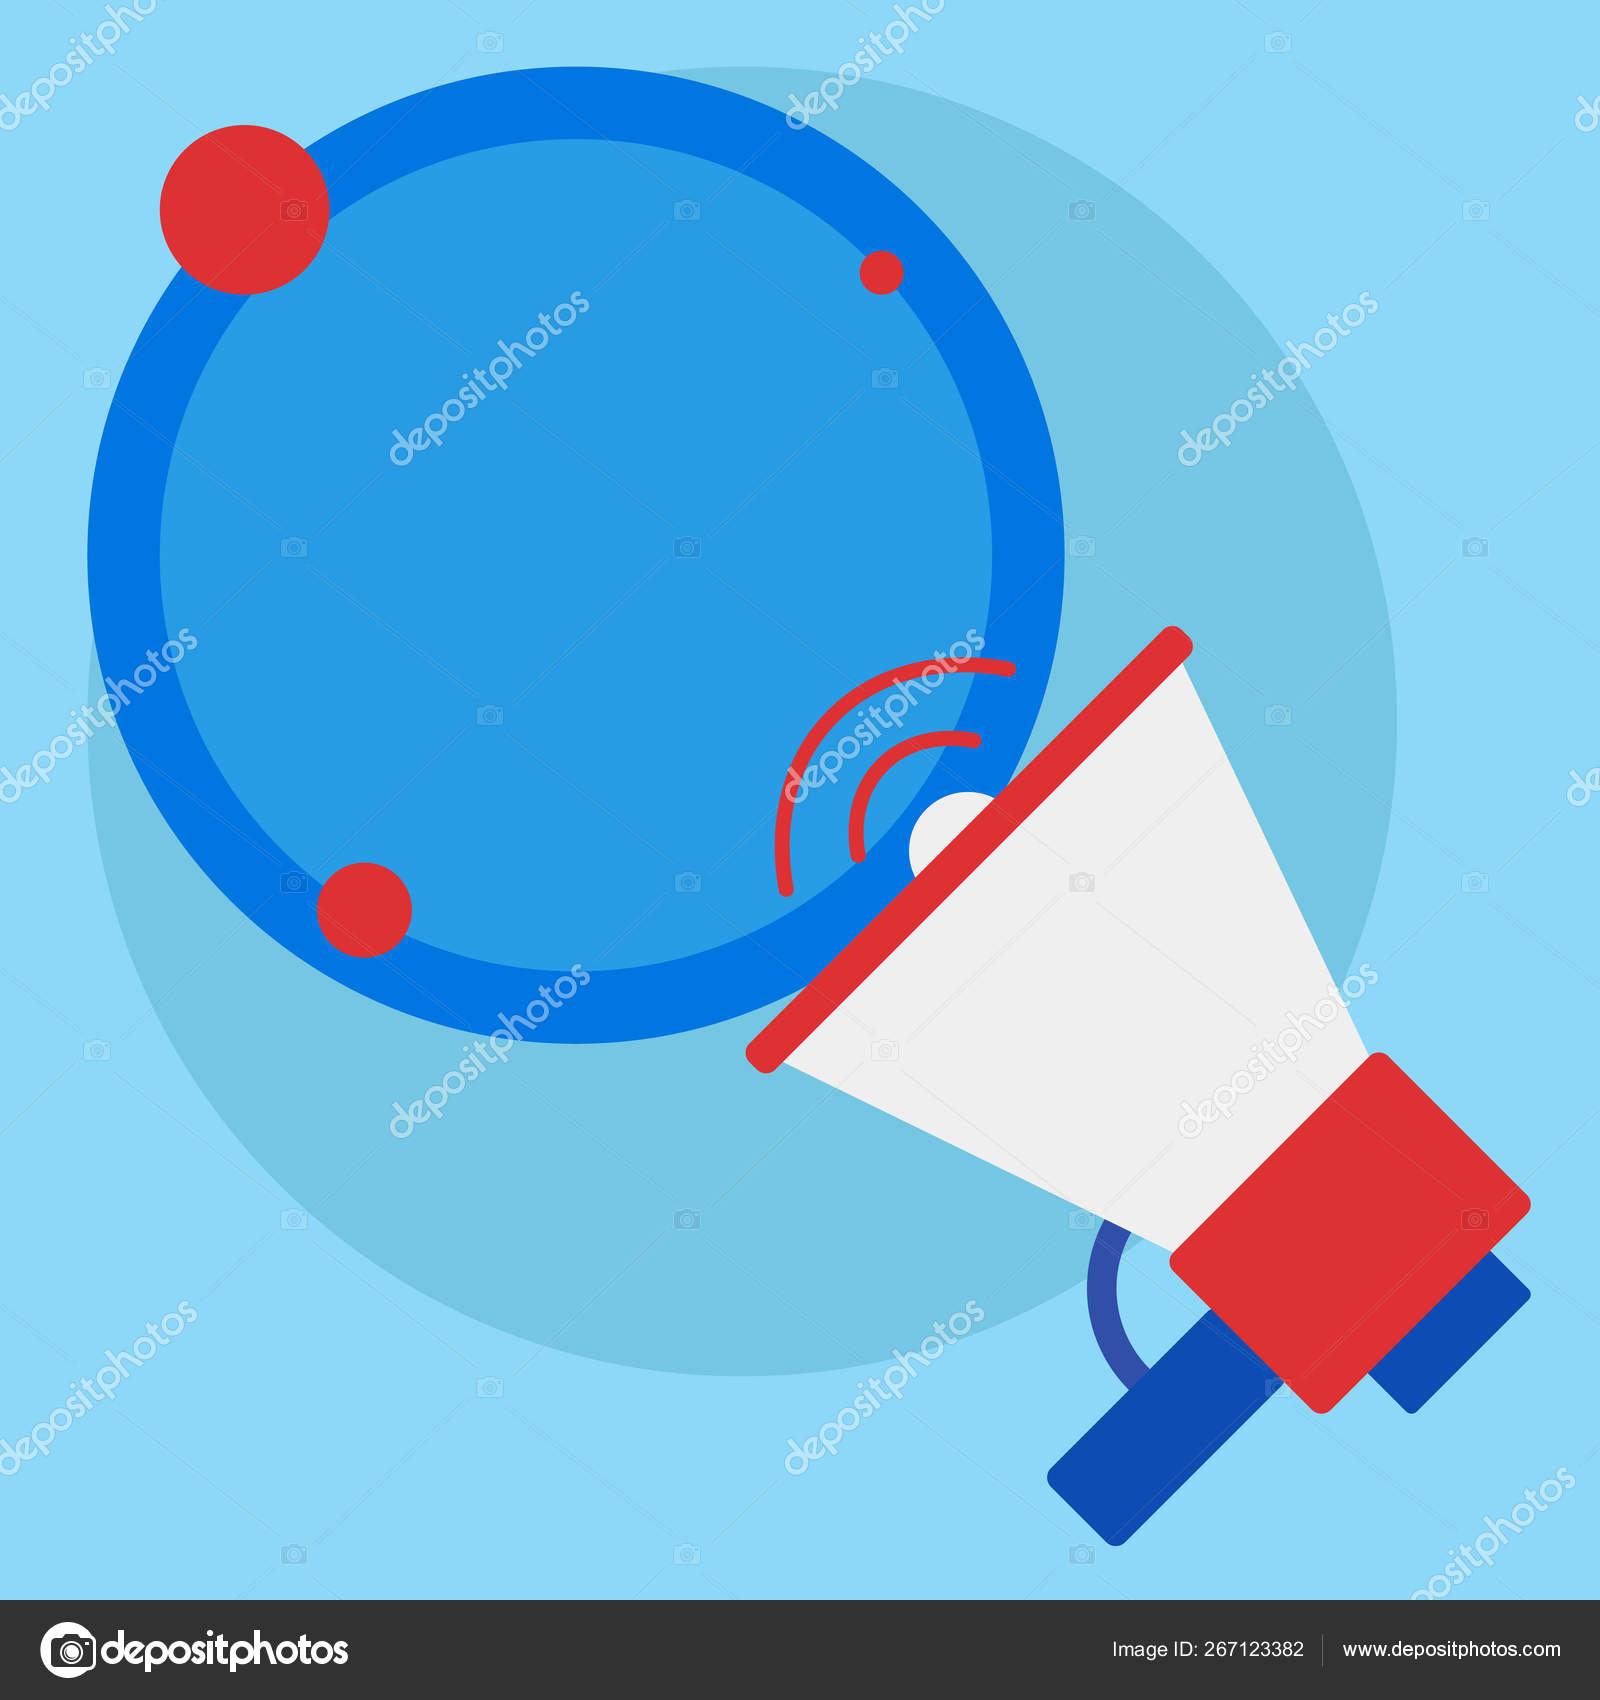 SpeakingTrumpet with Volume Icon and Blank Round Speech Bubble